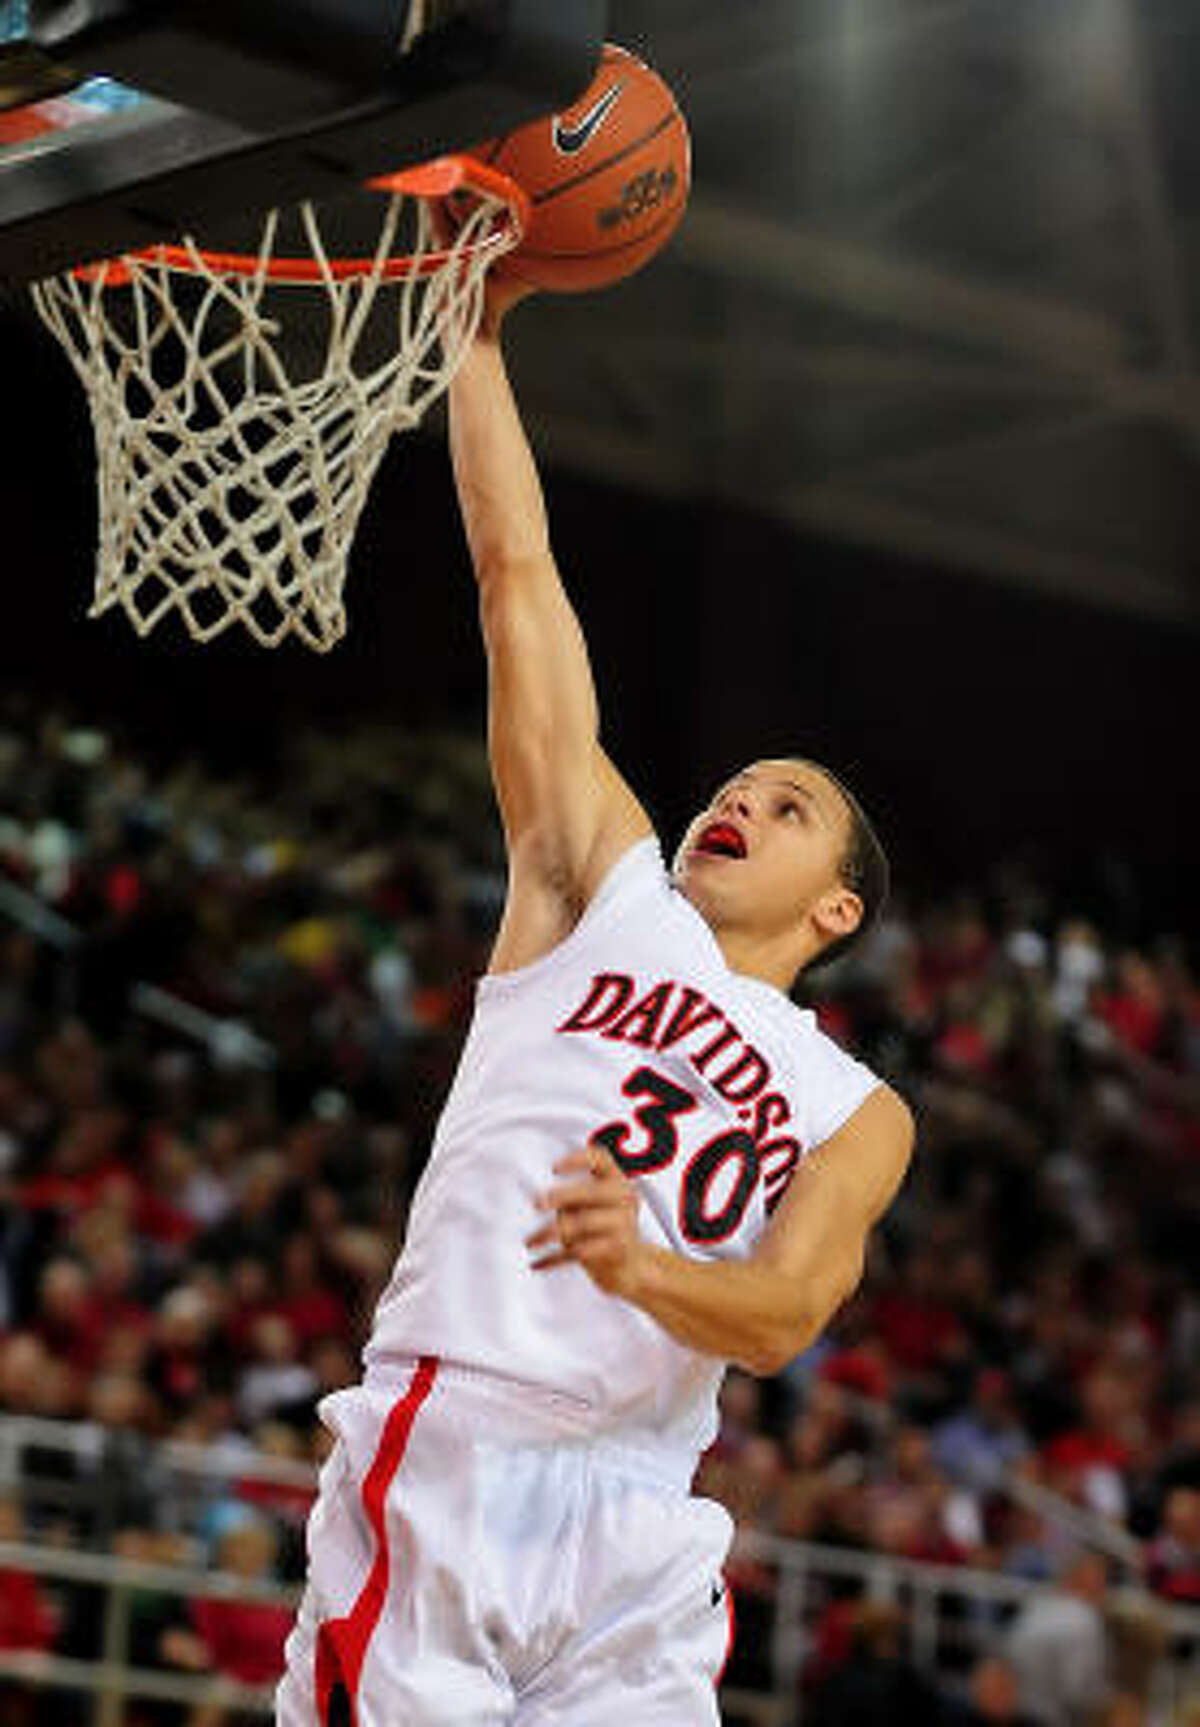 Stephen Curry, G, Davidson High basketball IQ; great feel, great pedigree; arguably best shooter in draft; transitioning from two to one; some questions defensively; very, very strong skill set.